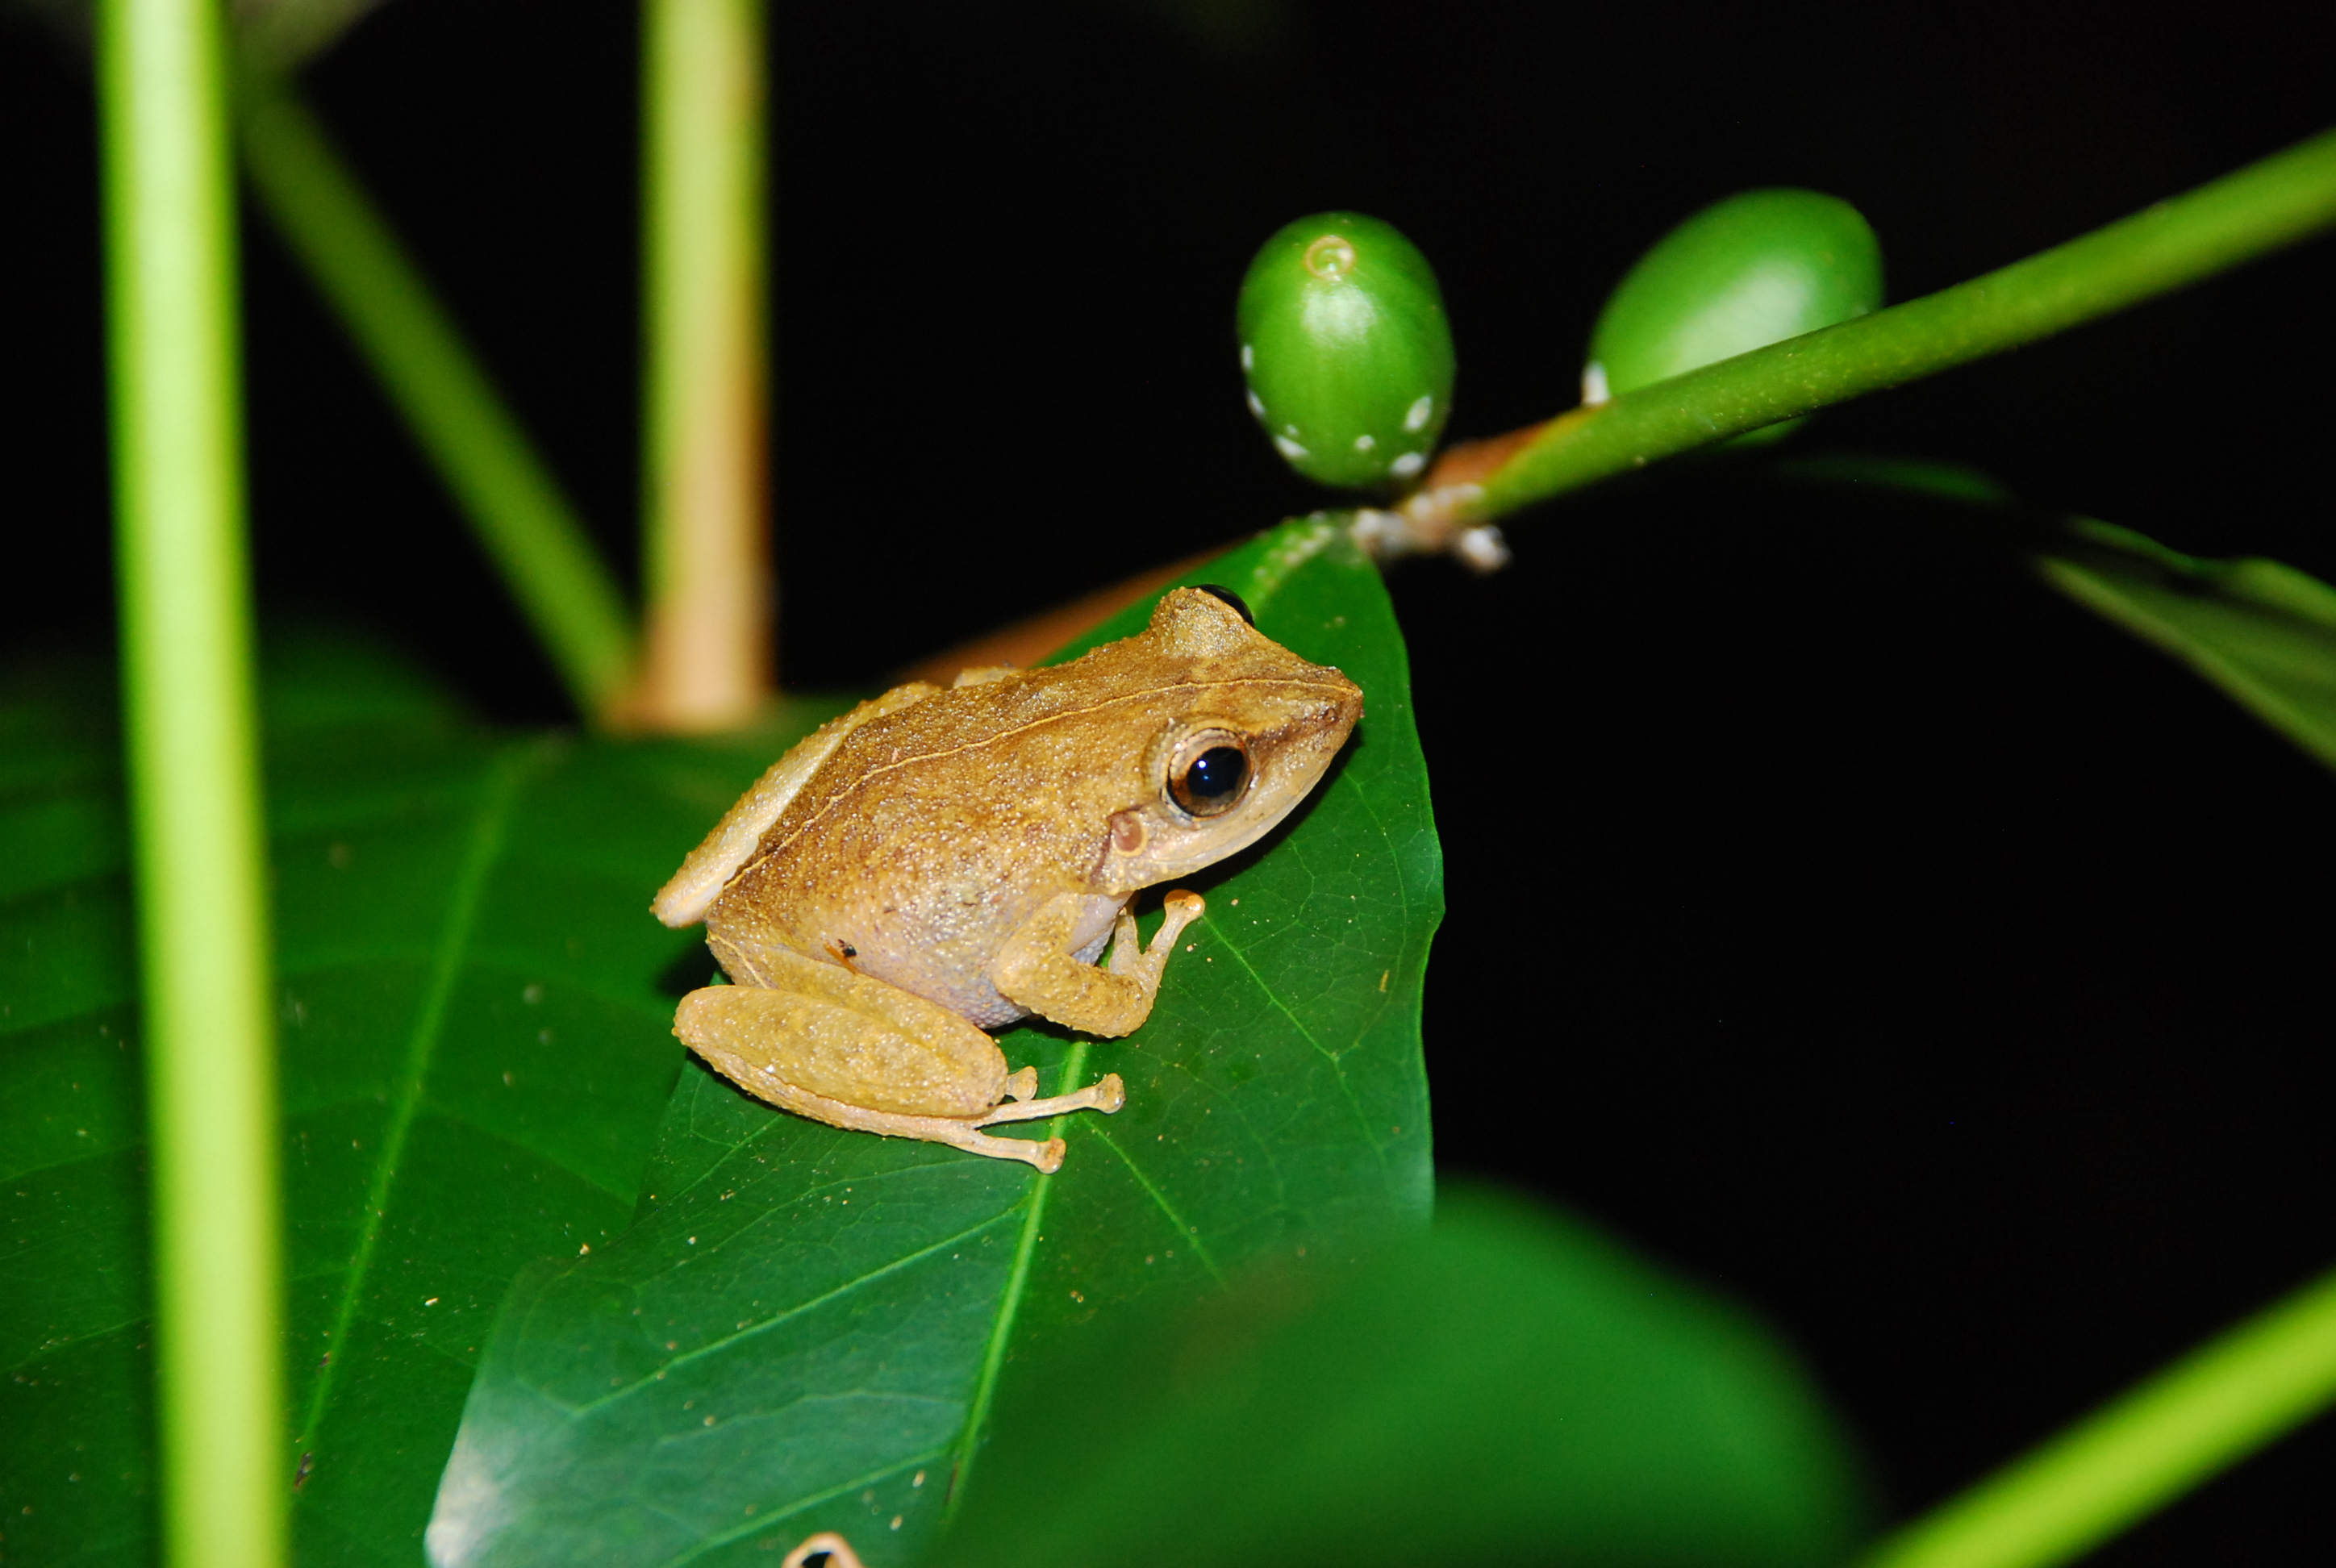 One thriving, non-native frog species in Hawaii has suddenly boosted the numbers of several invasive bird species.